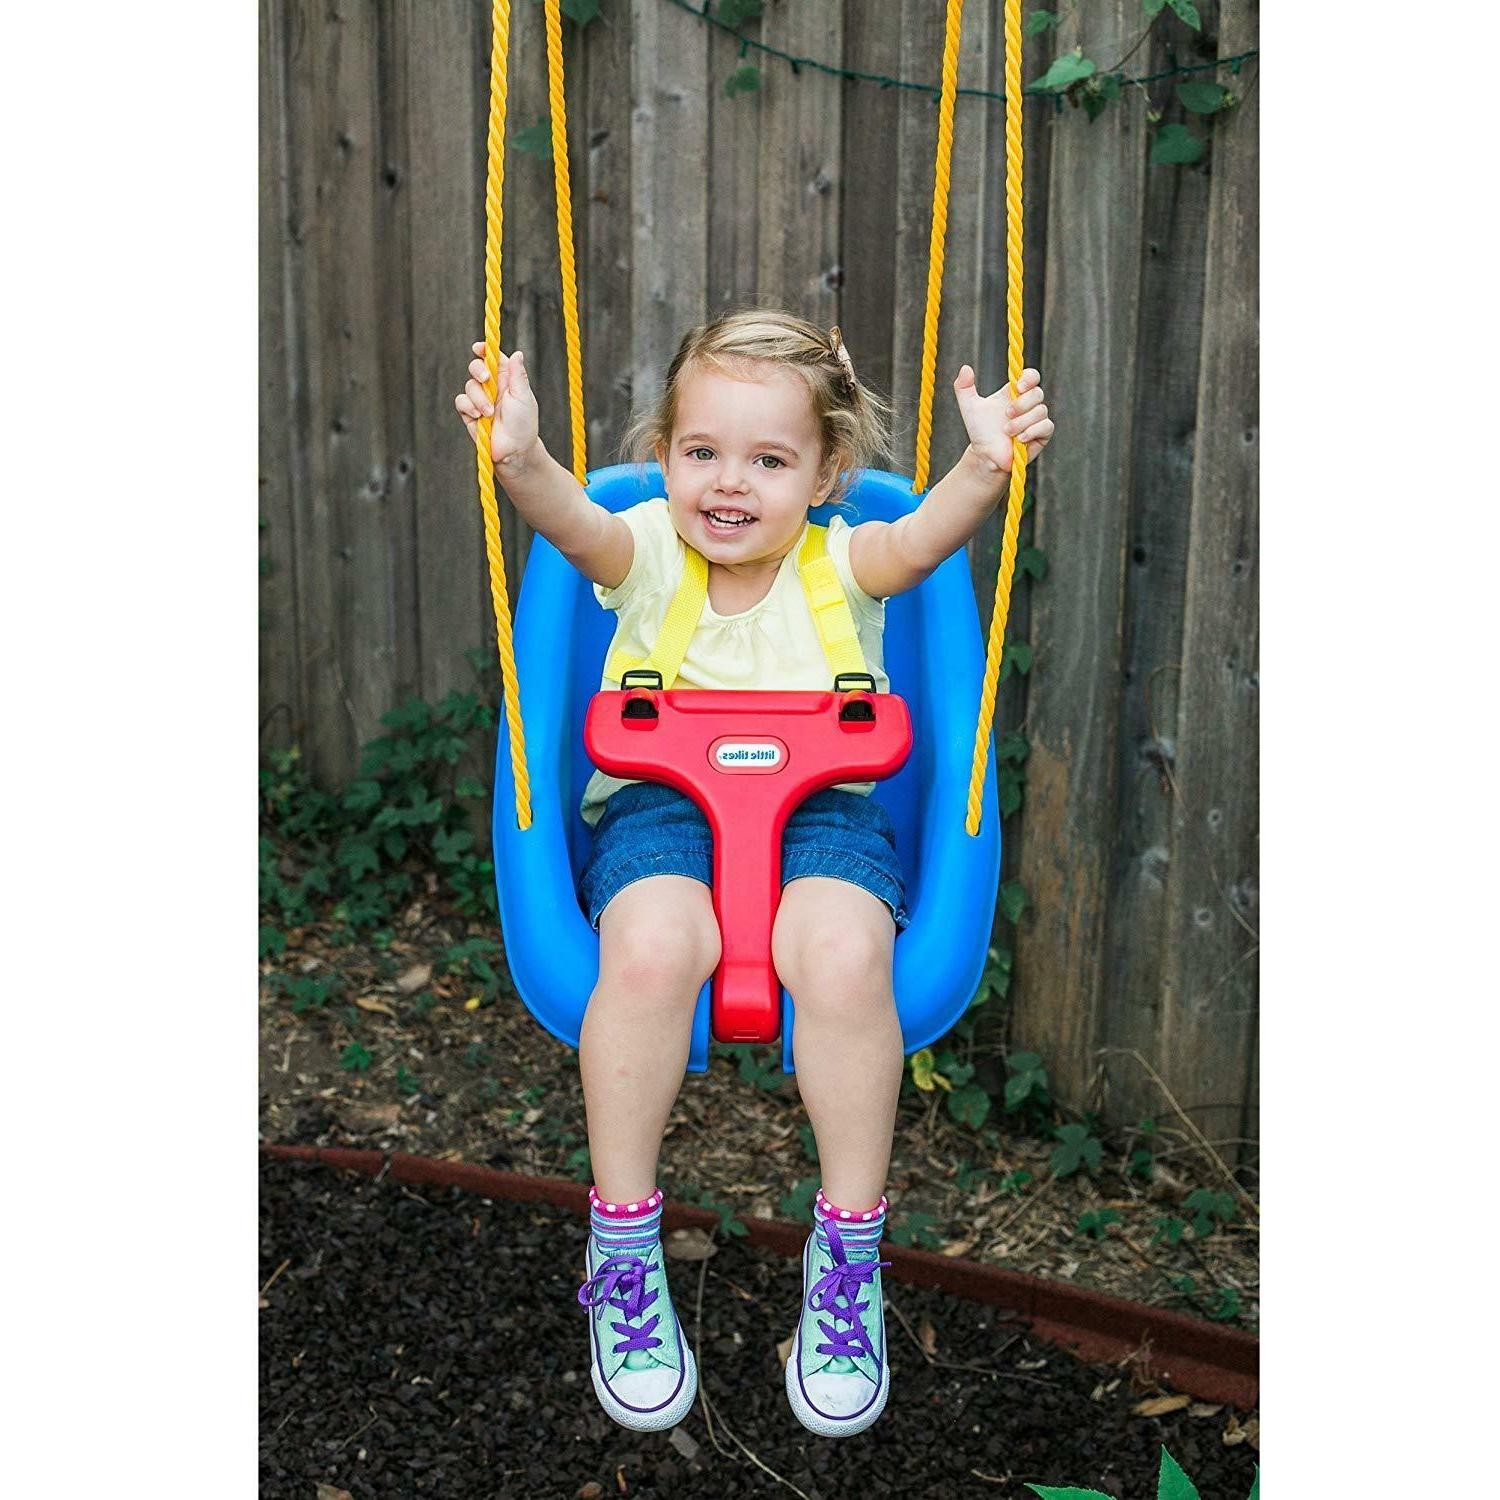 Little Tikes 'n Secure Outdoor Seat